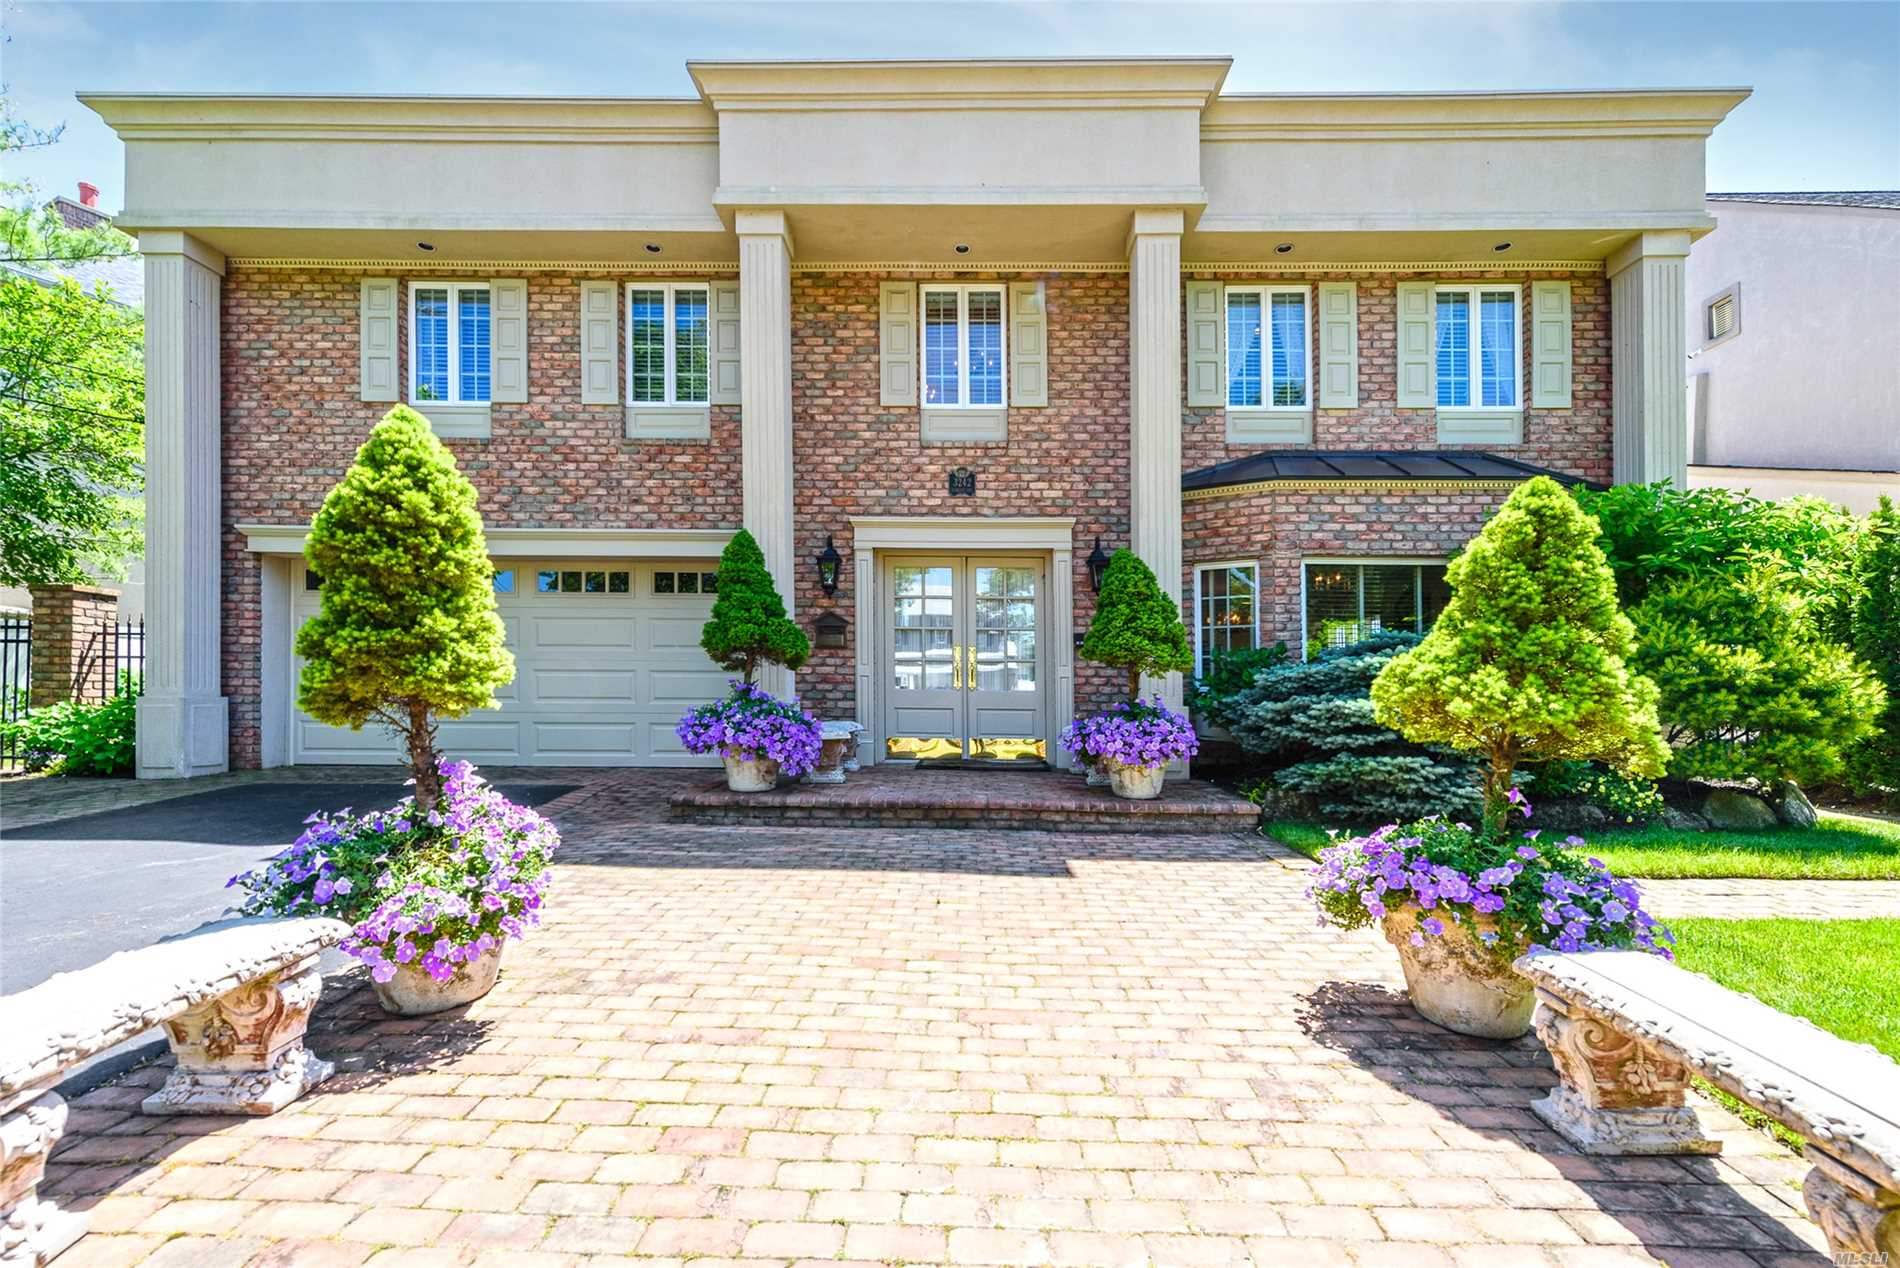 Waterfront Neo Classic Chateau, Totally Renovated, Top Of The Line, Stunning Panoramic Open Bay Views, Resort Yard With New Bulkhead, Floating Dock, Gas Bbq Center And Salt Water Pool.Fabulous Center Island Chefs Eik/Granite, Open Plan Fdr, Stainless Applnces, Gas Cooking, Hrdwd Floors, Dsgnr Granite Baths, Cstm Mldngs, Cabana Bath, Amazing Finishes And Upgrades! Superior Curb Appeal, Views To Die For, Pristine Throughout, Southern Exposure, Sun All Day And Unreal Sunsets!